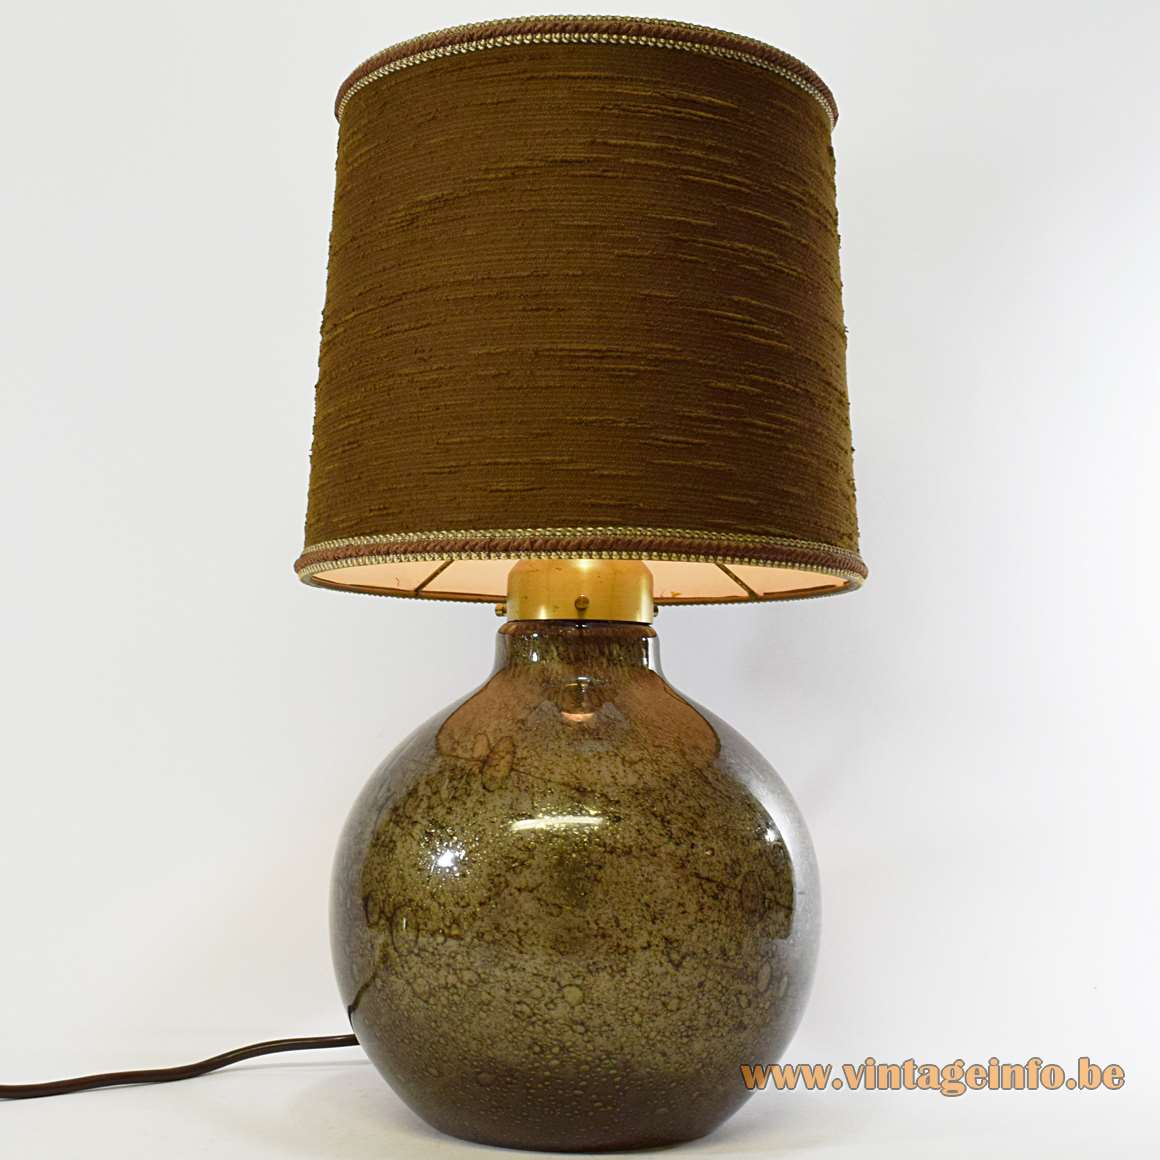 Peill + Putzler Bubble Glass Table Lamp brown glass globe bottle brass round lampshade 1970s MCM